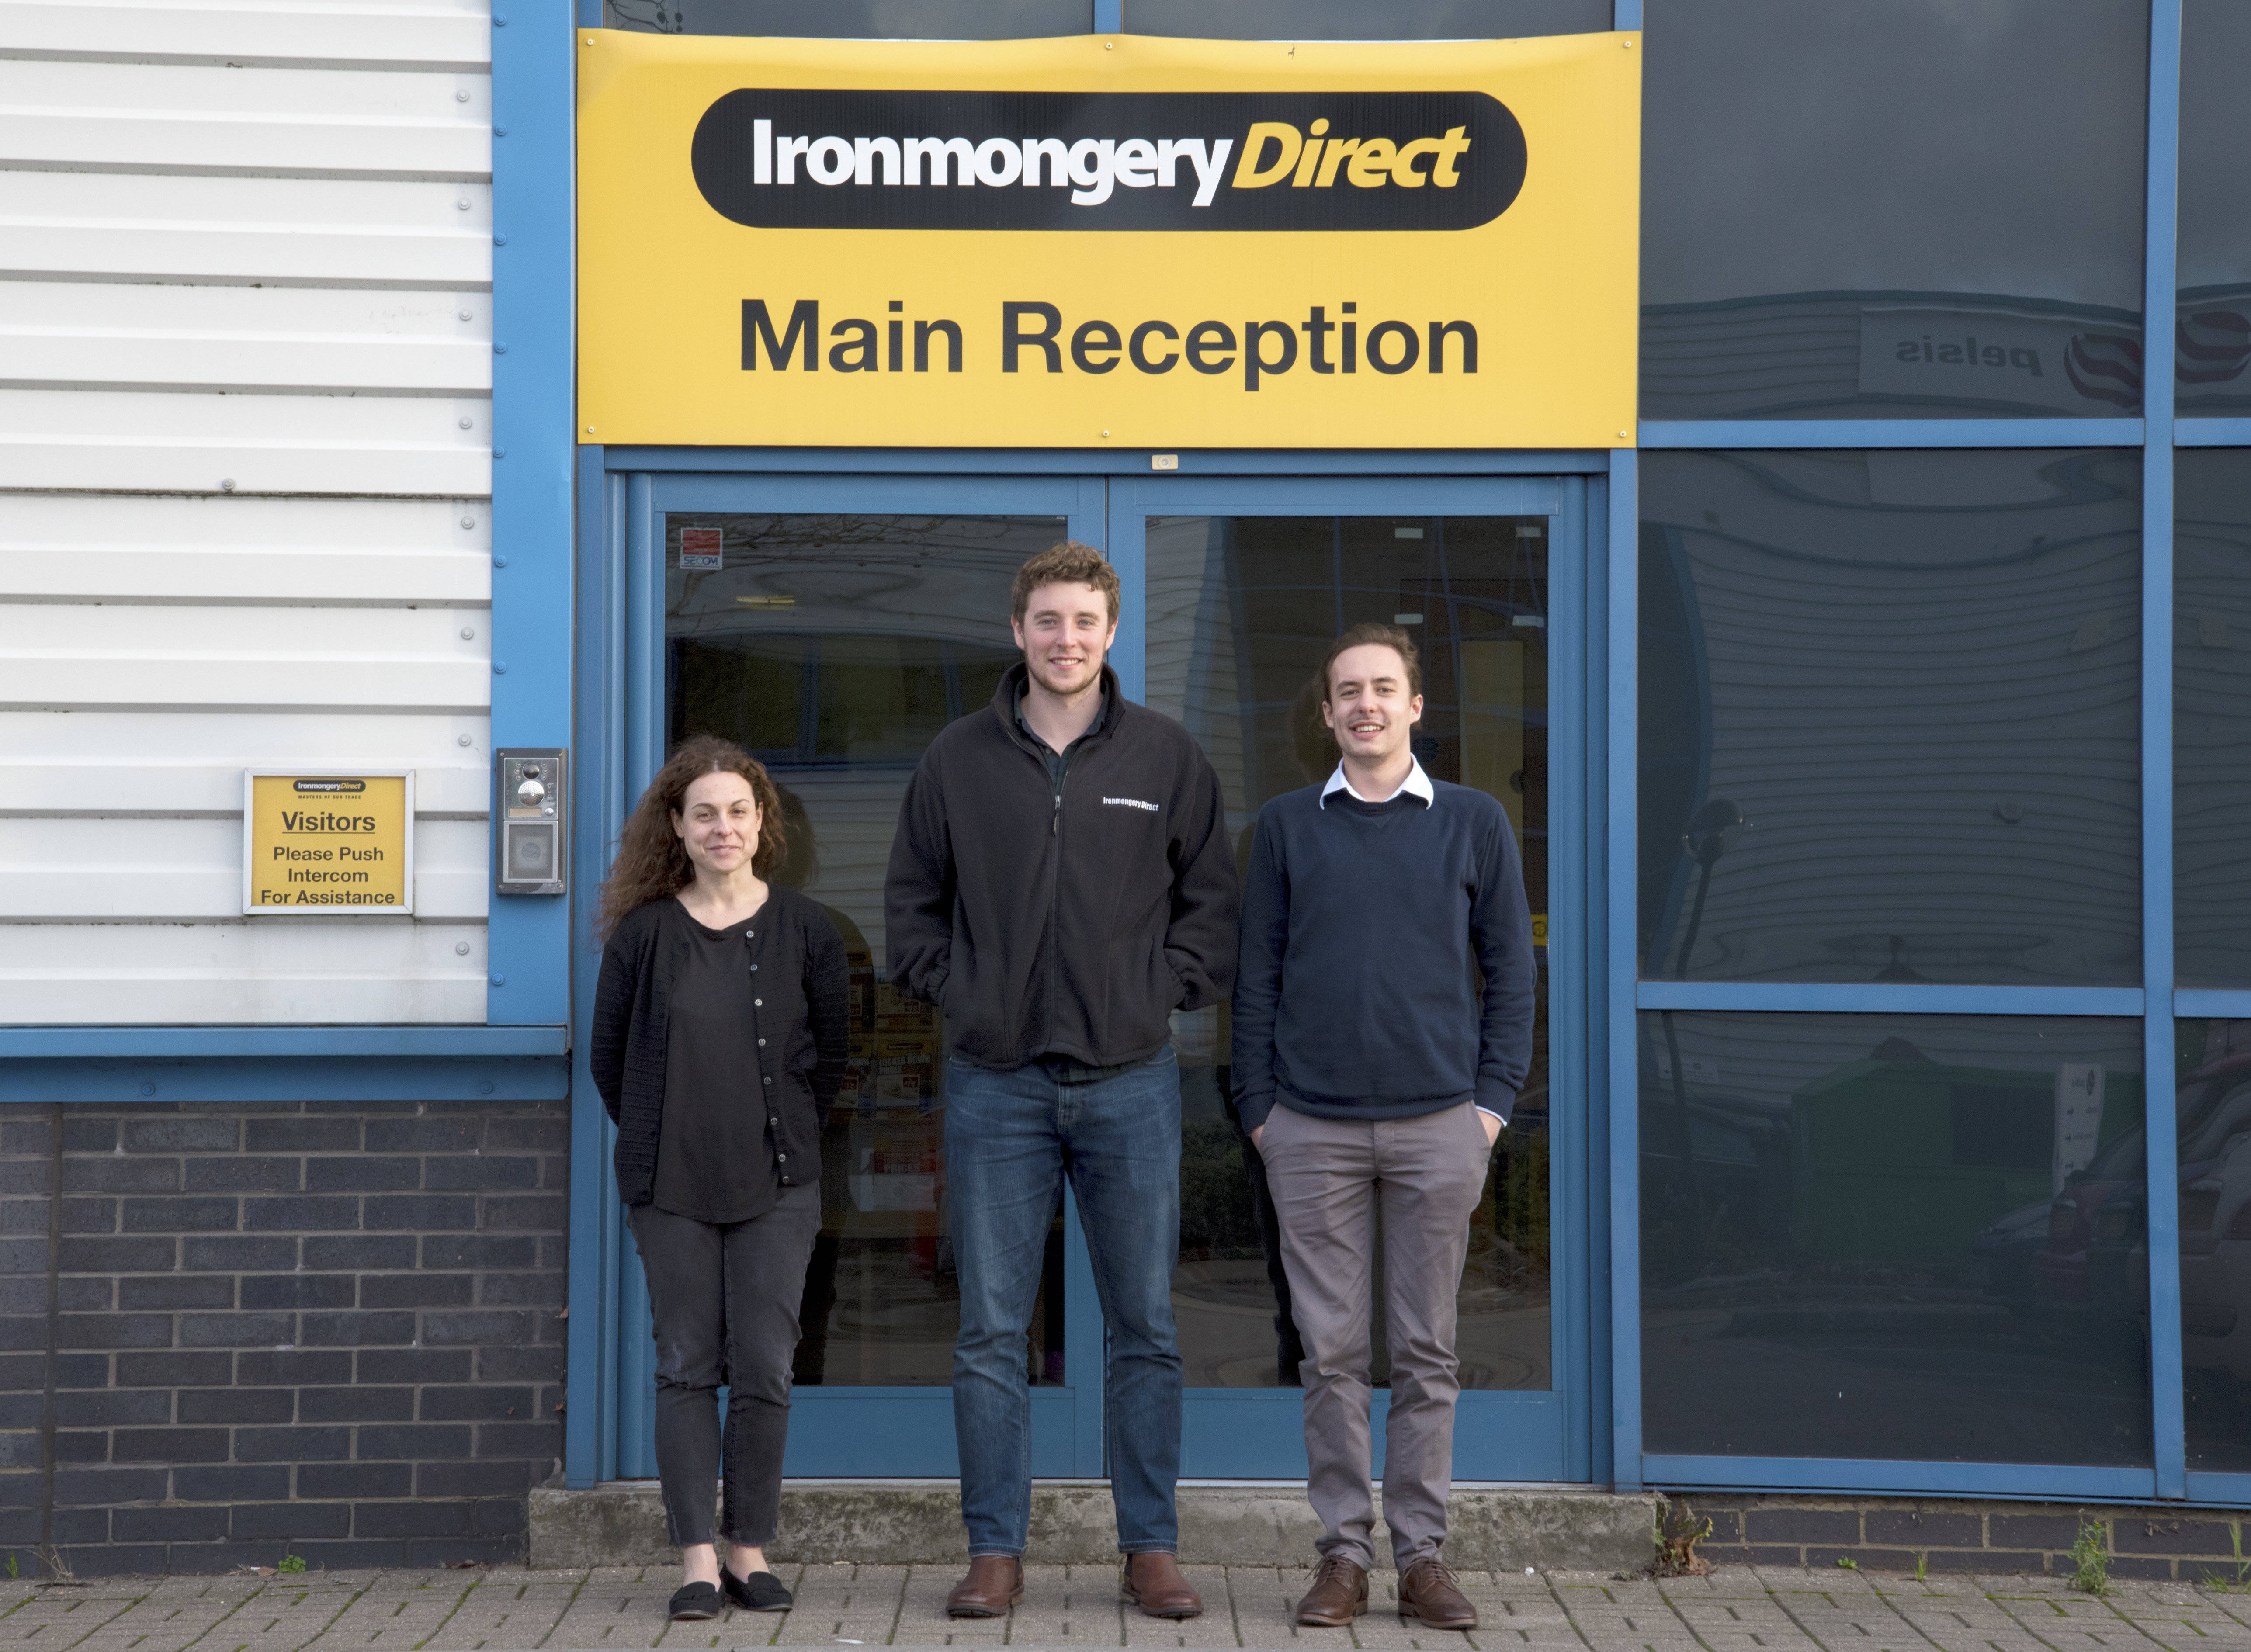 IronmongeryDirect's diverse graduate scheme attracts applicants from across the UK